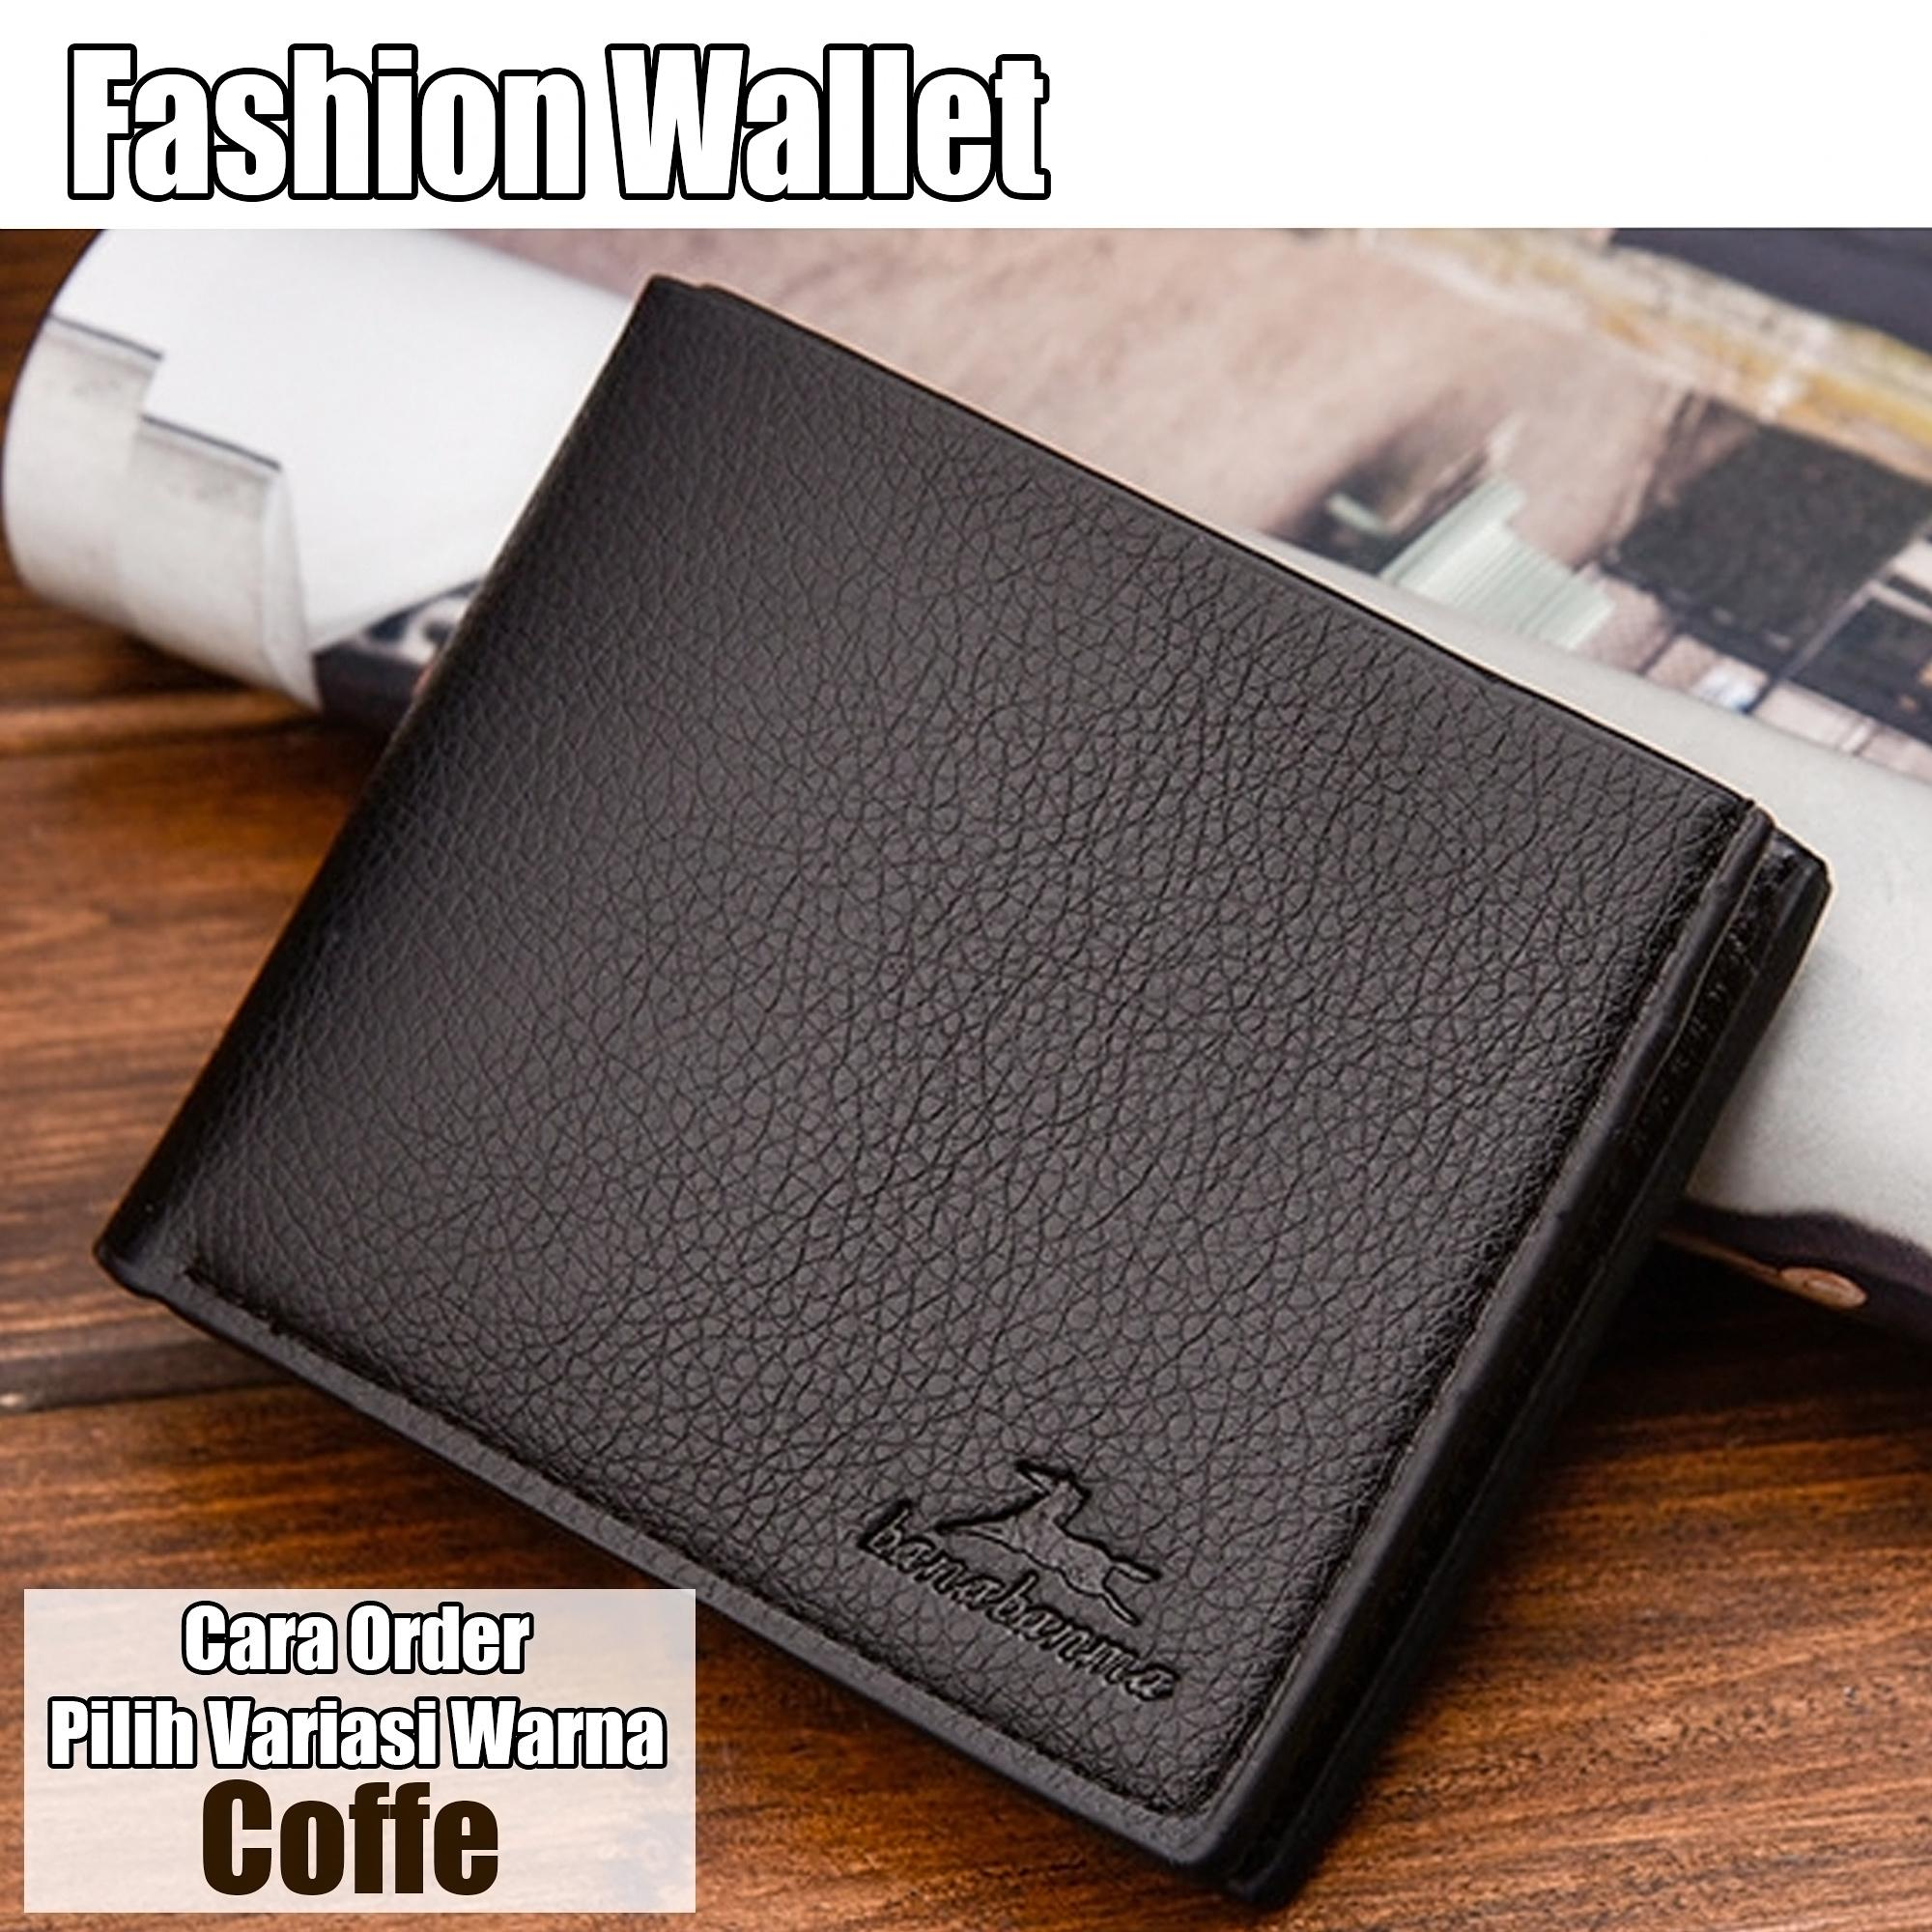 Dompet Pria Import Dompet Pria Dompet Kulit Mens Wallet Import Leather  Wallet Fashion Wallet e05e96ae4e